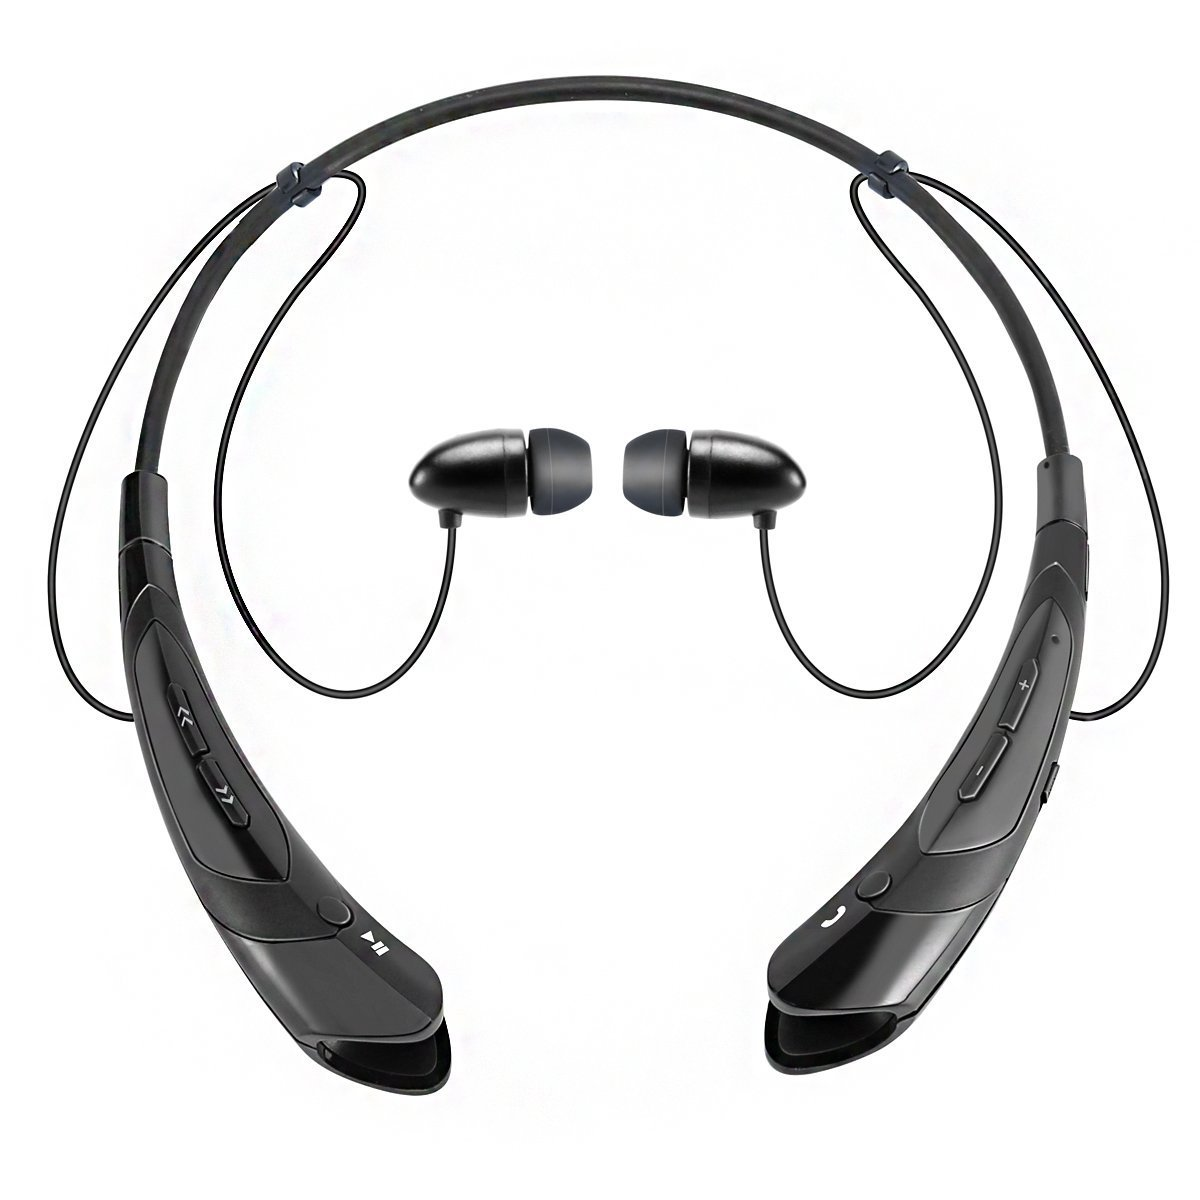 Sport Neckband Style Magnetic Earbuds with Mic for iPhone Series and Android Phones Silver Bluetooth Earphone Headphones,V4.1 Stereo Noise Cancelling Wireless Headset